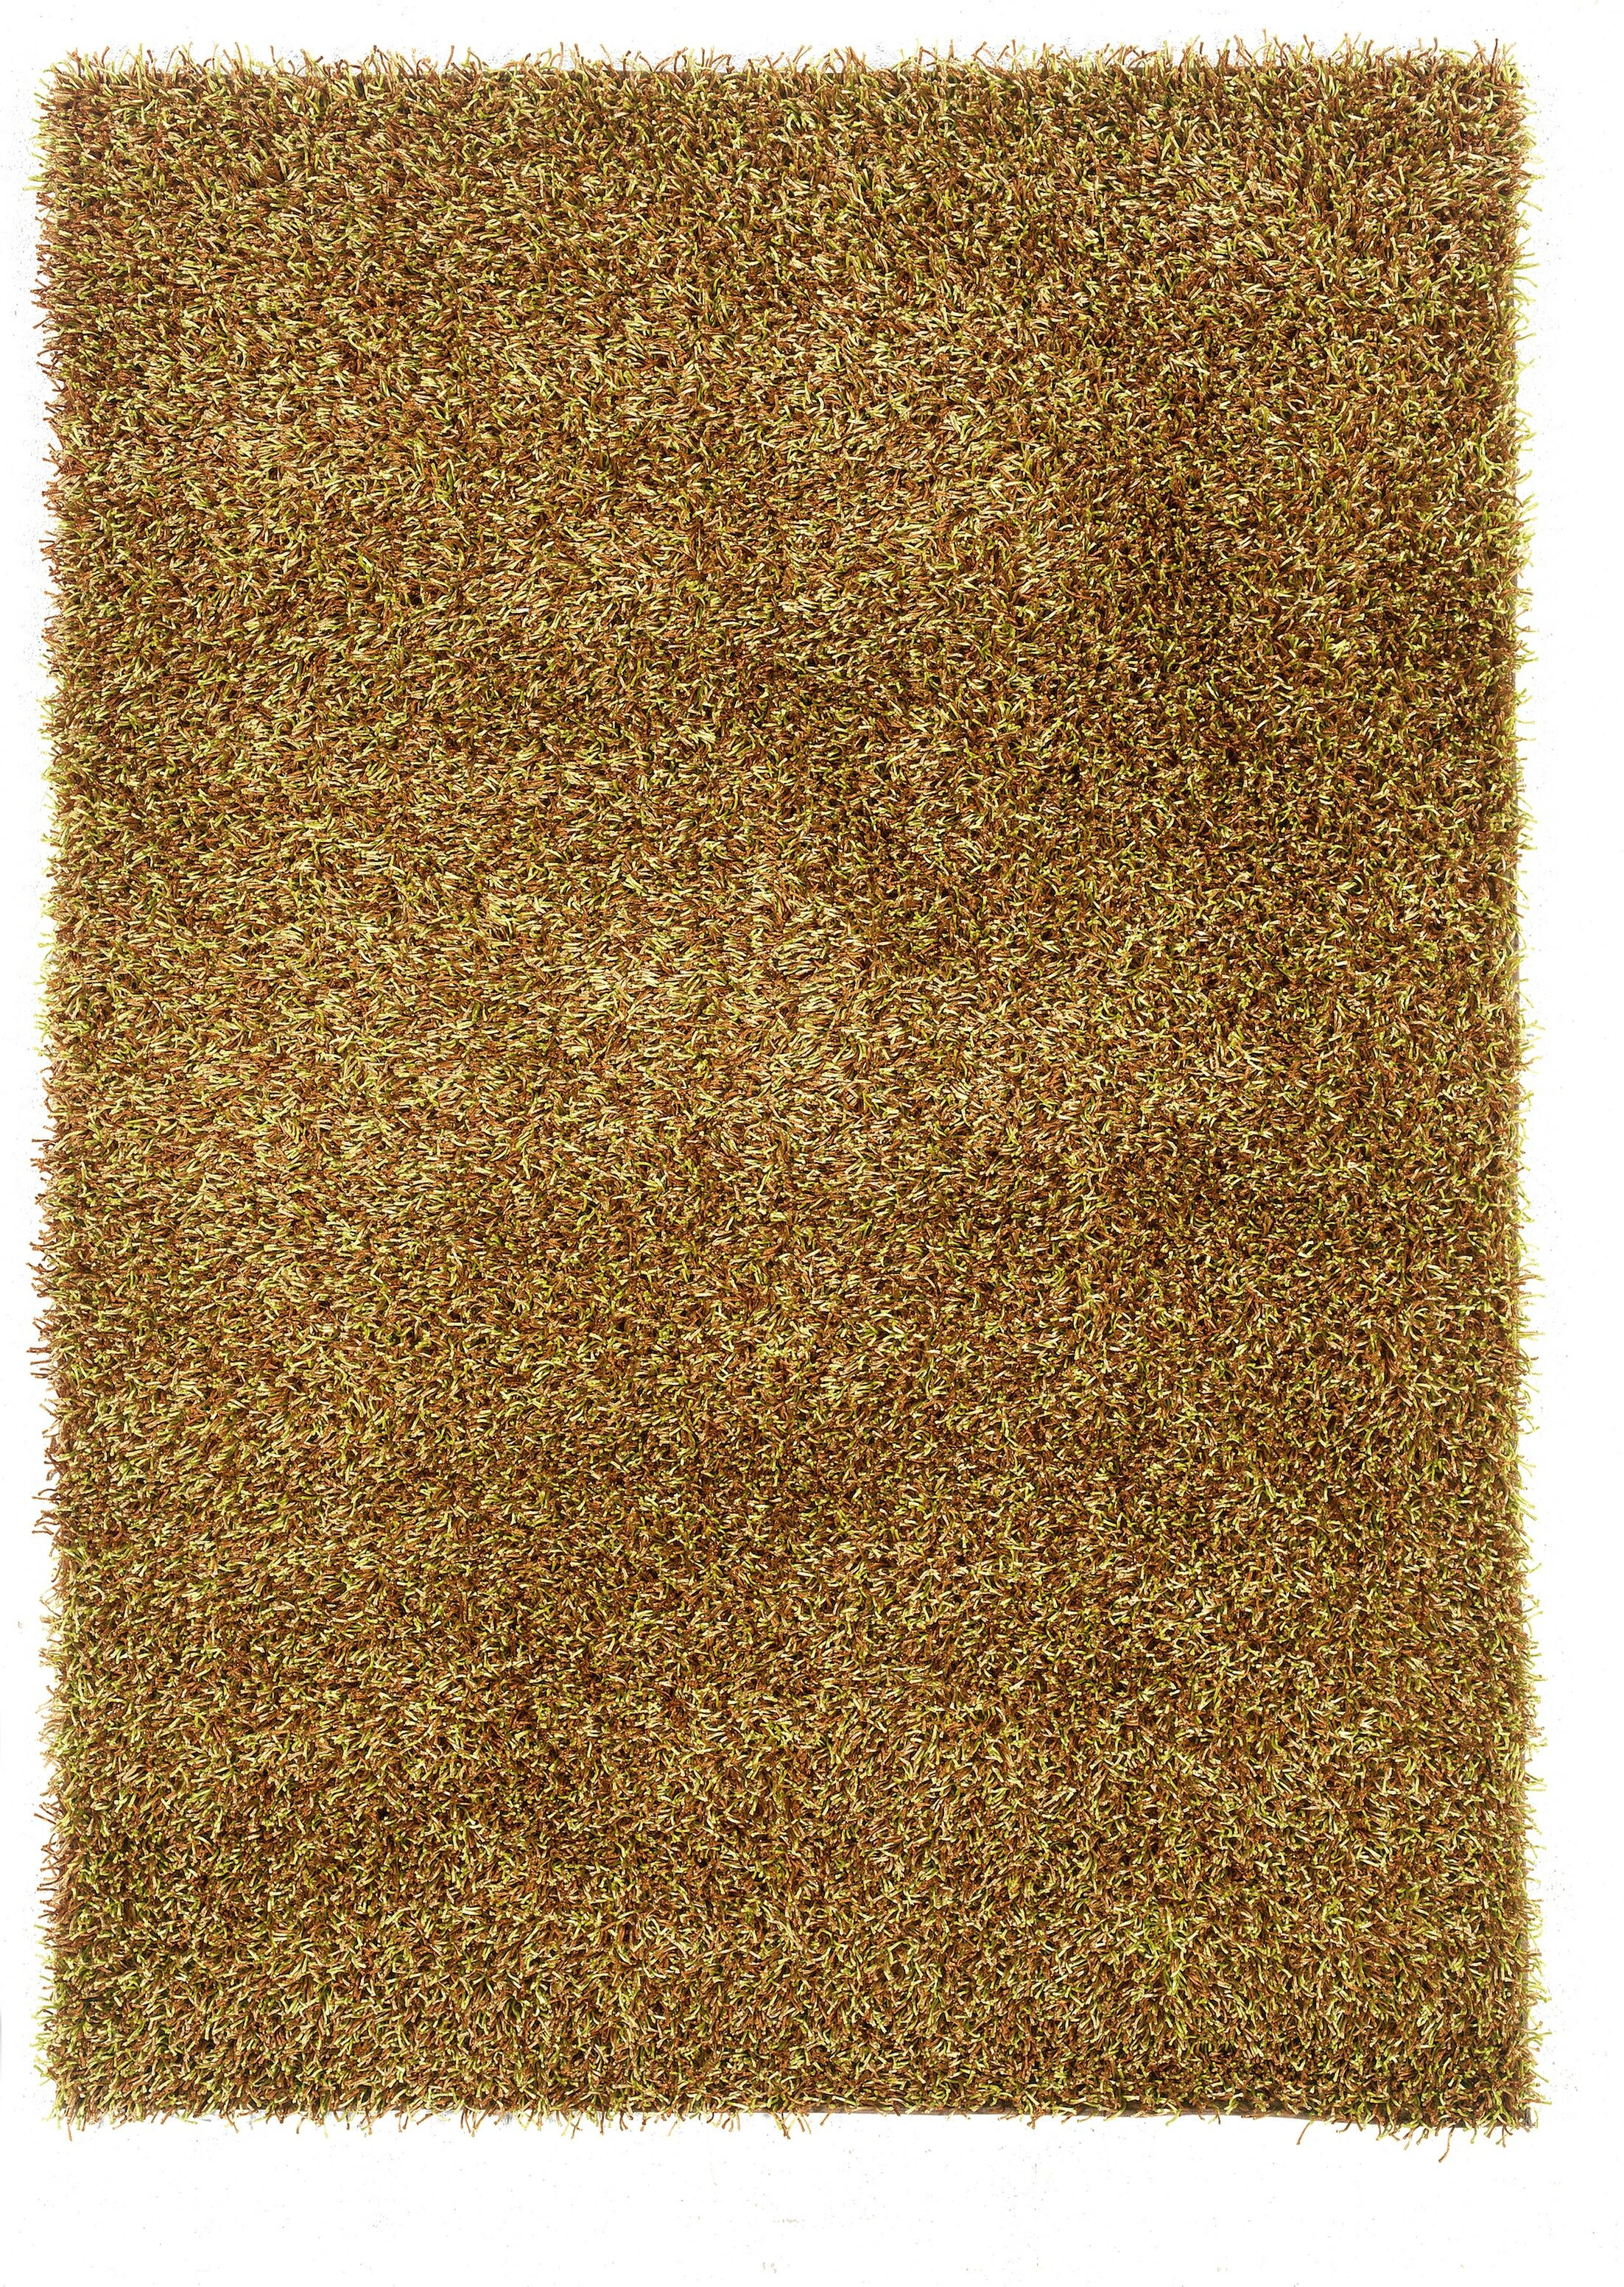 Hand-Tufted Brown Area Rug Rug Size: Rectangle 5' x 7'